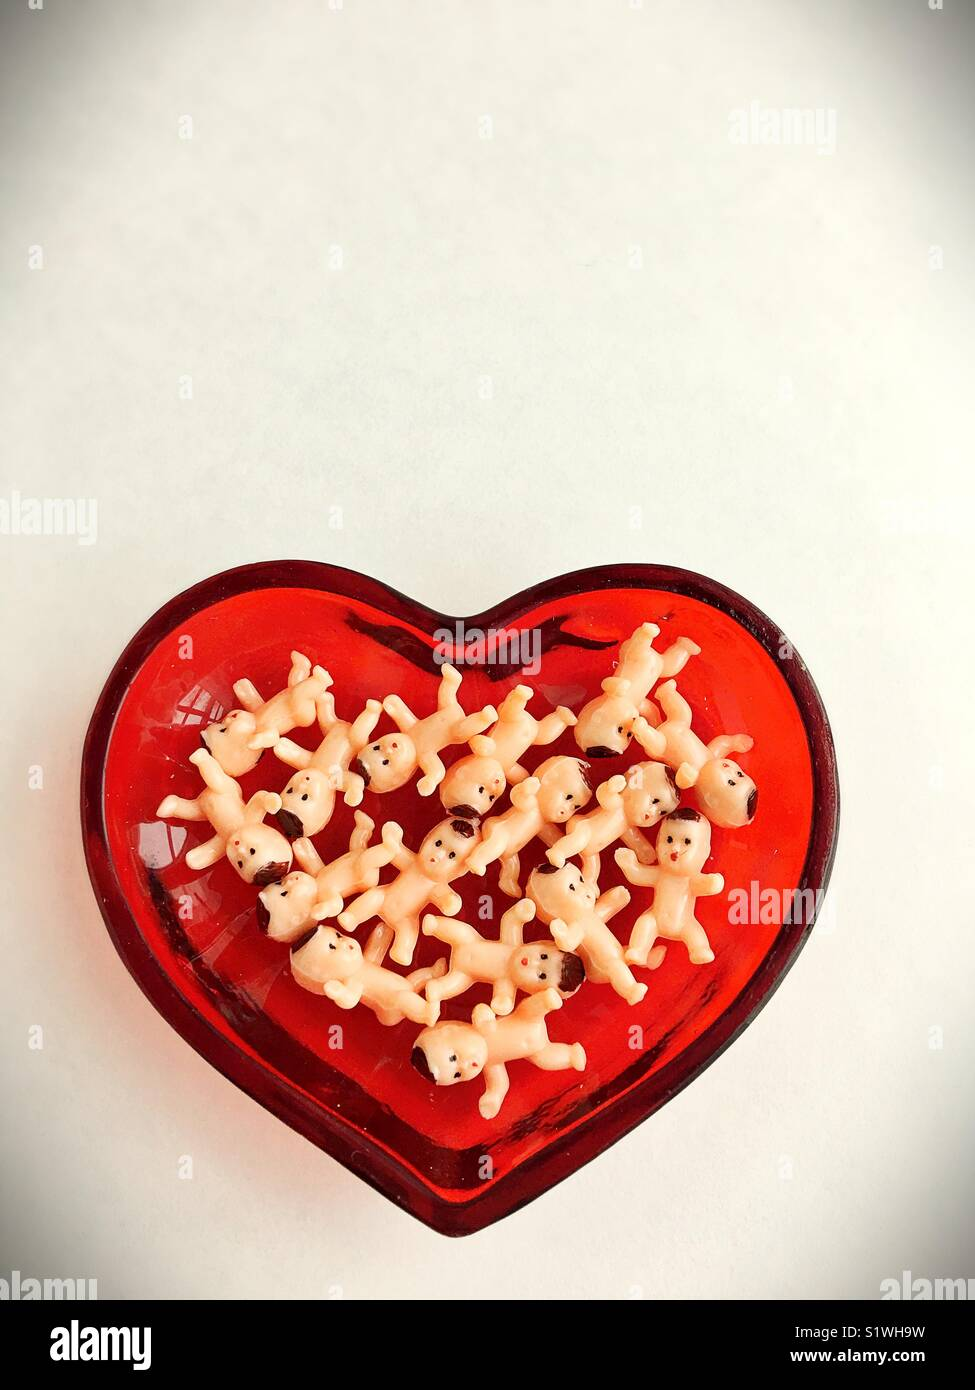 Plastic miniature baby dolls in a heart shaped dish. - Stock Image